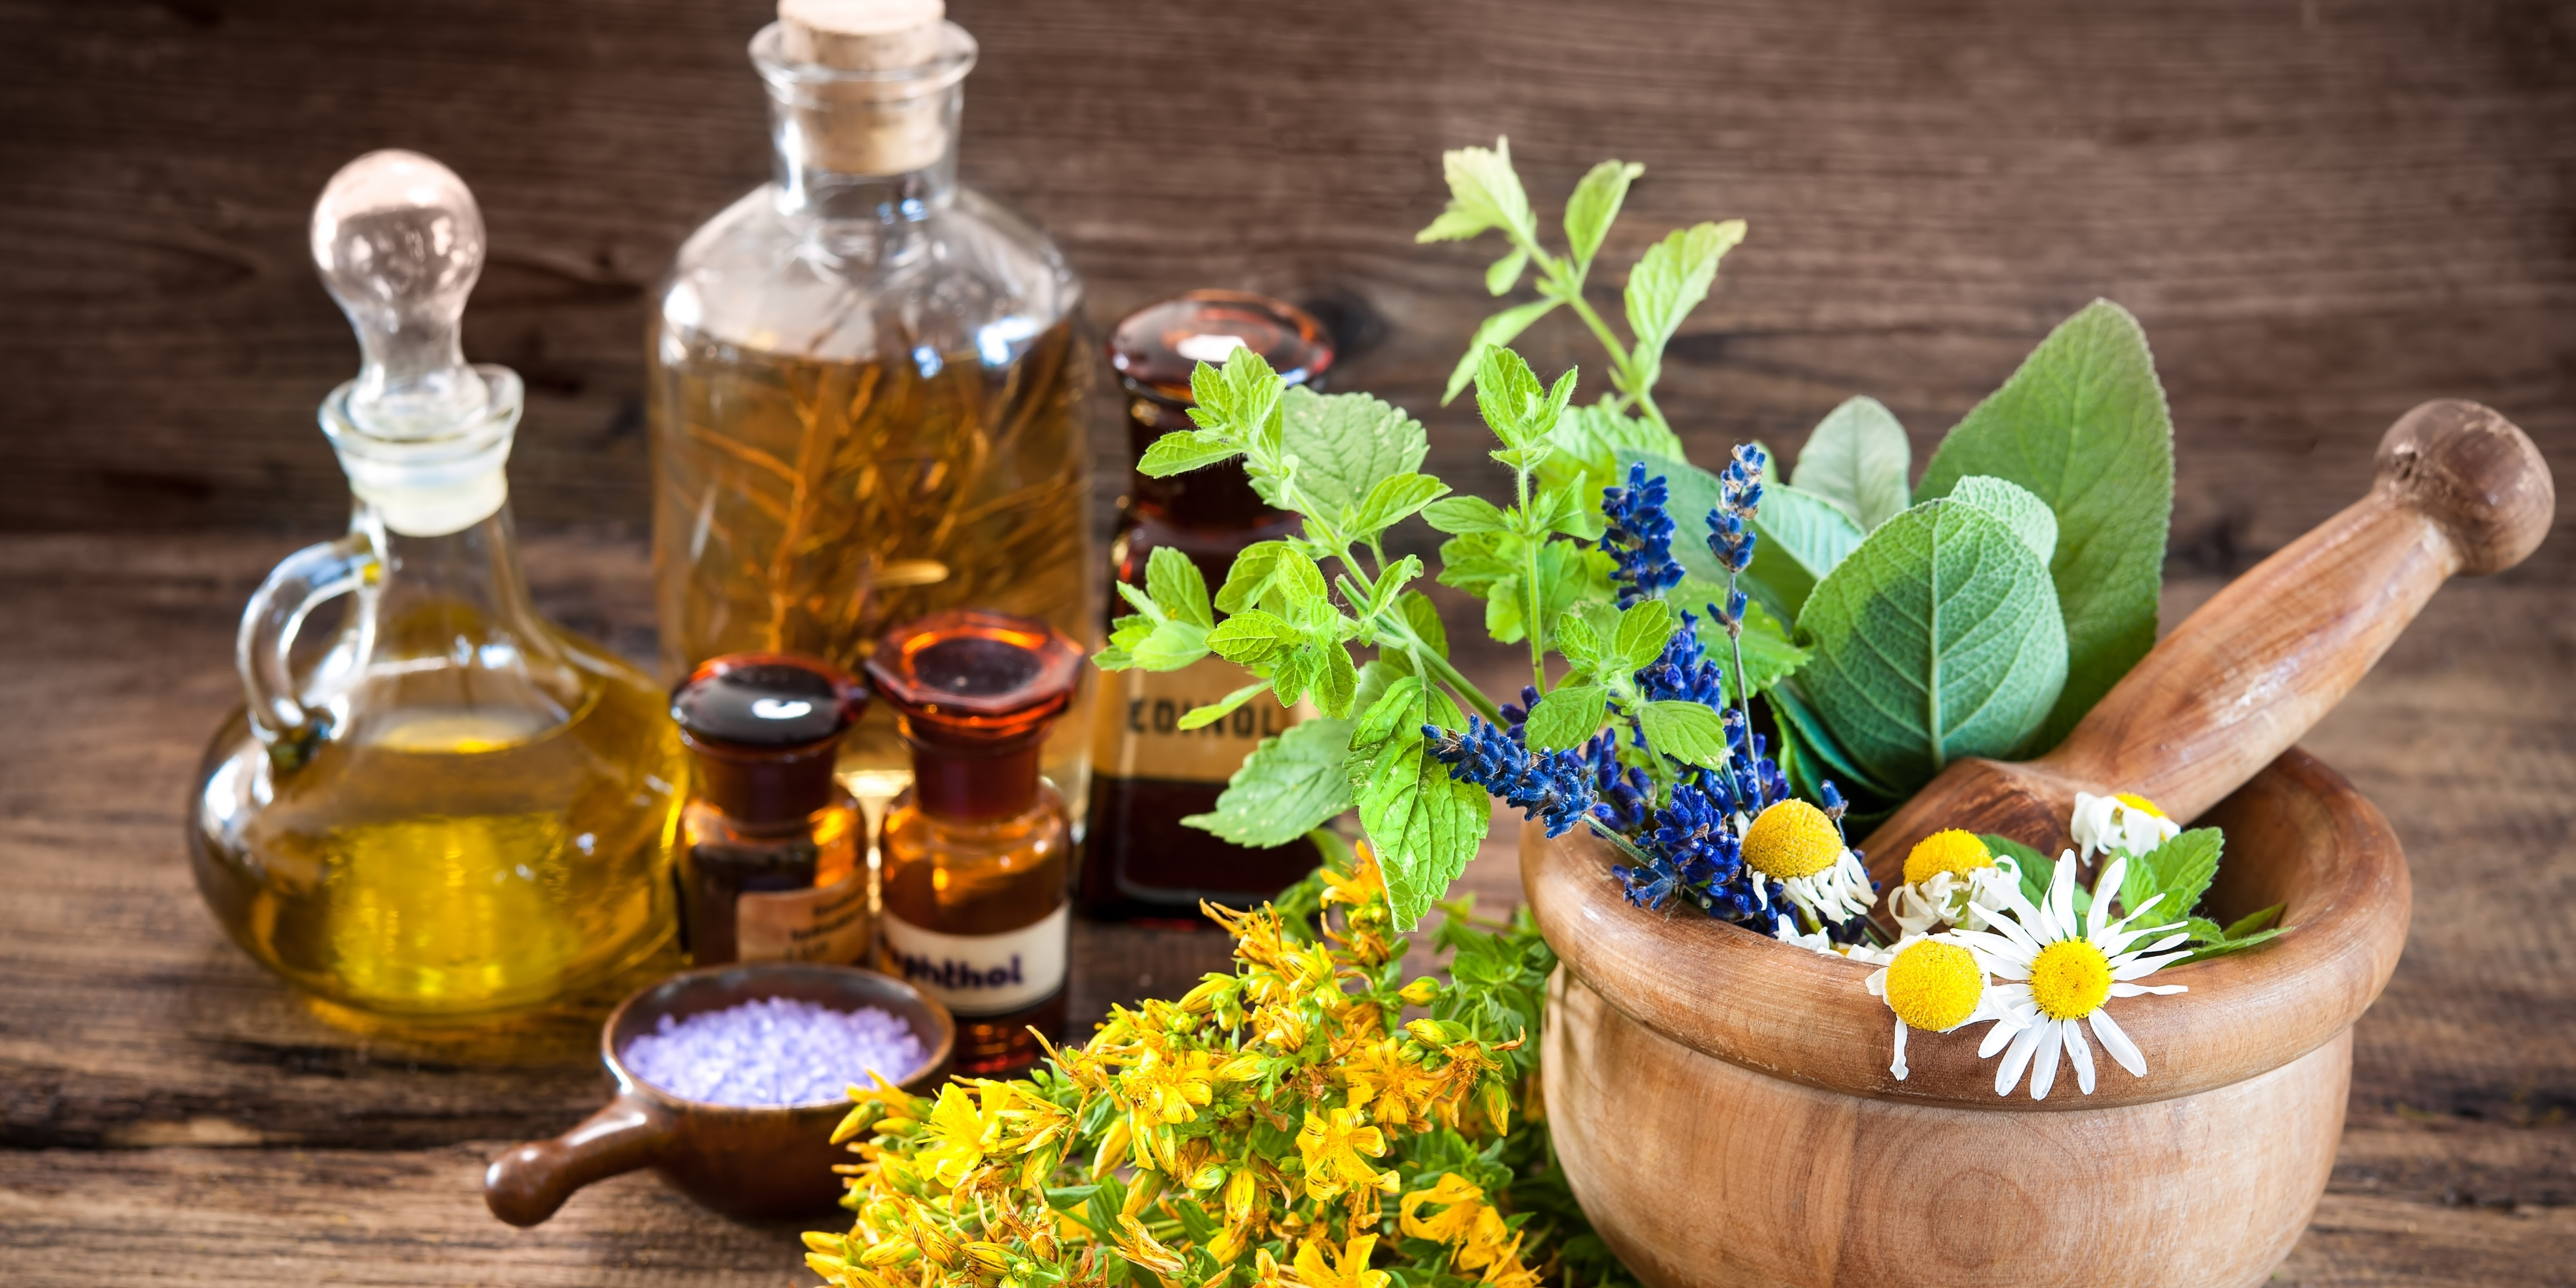 Annual Congress & Exhibition on Traditional and Alternative Medicine